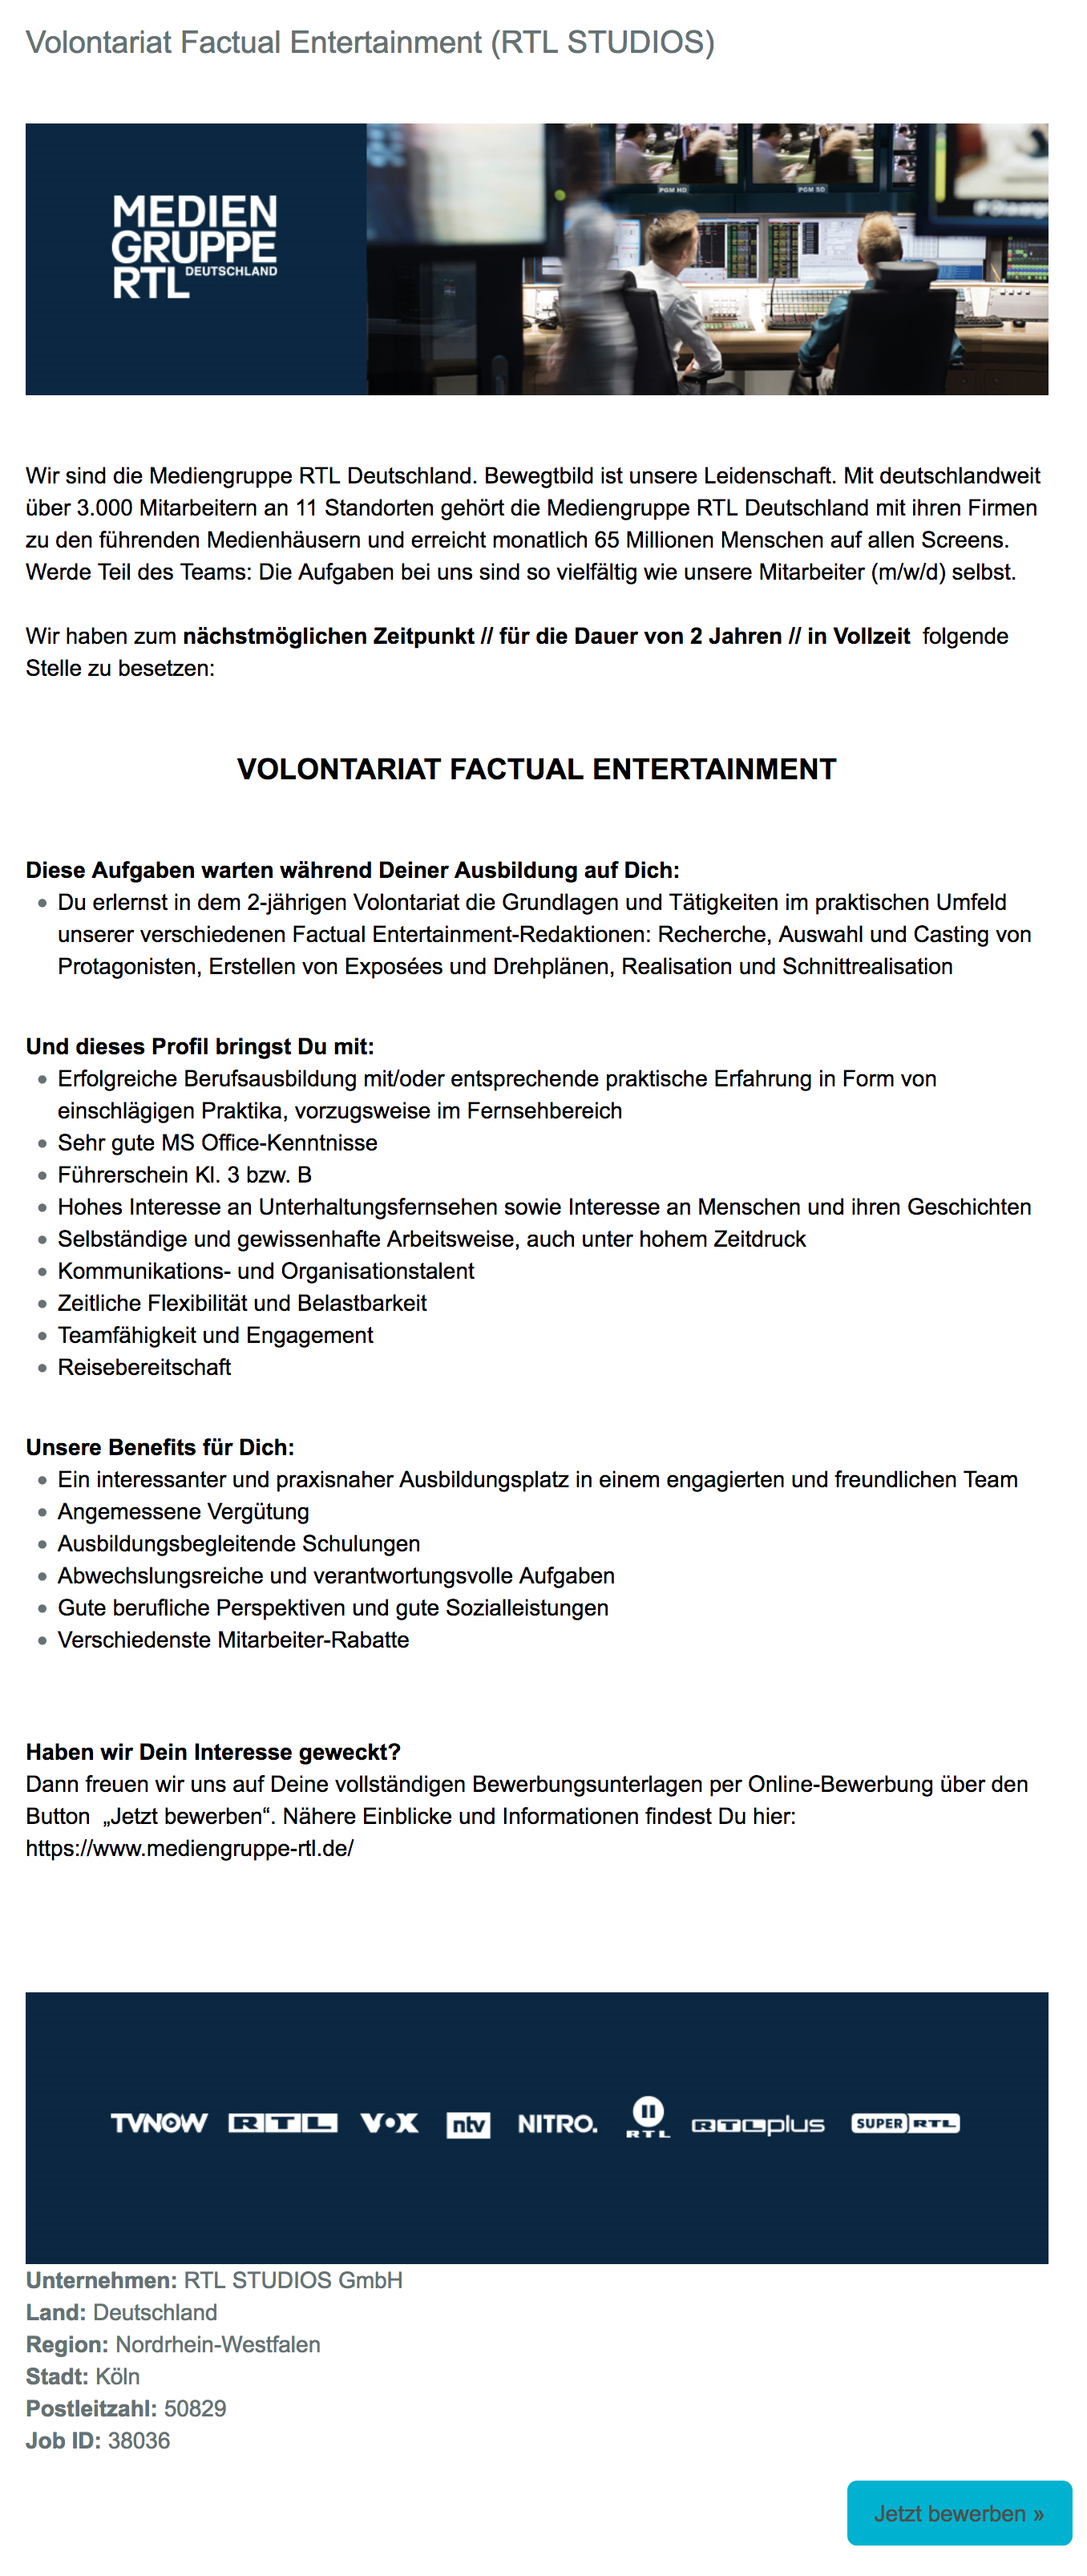 Volontariat Factual Entertainment (RTL STUDIOS)